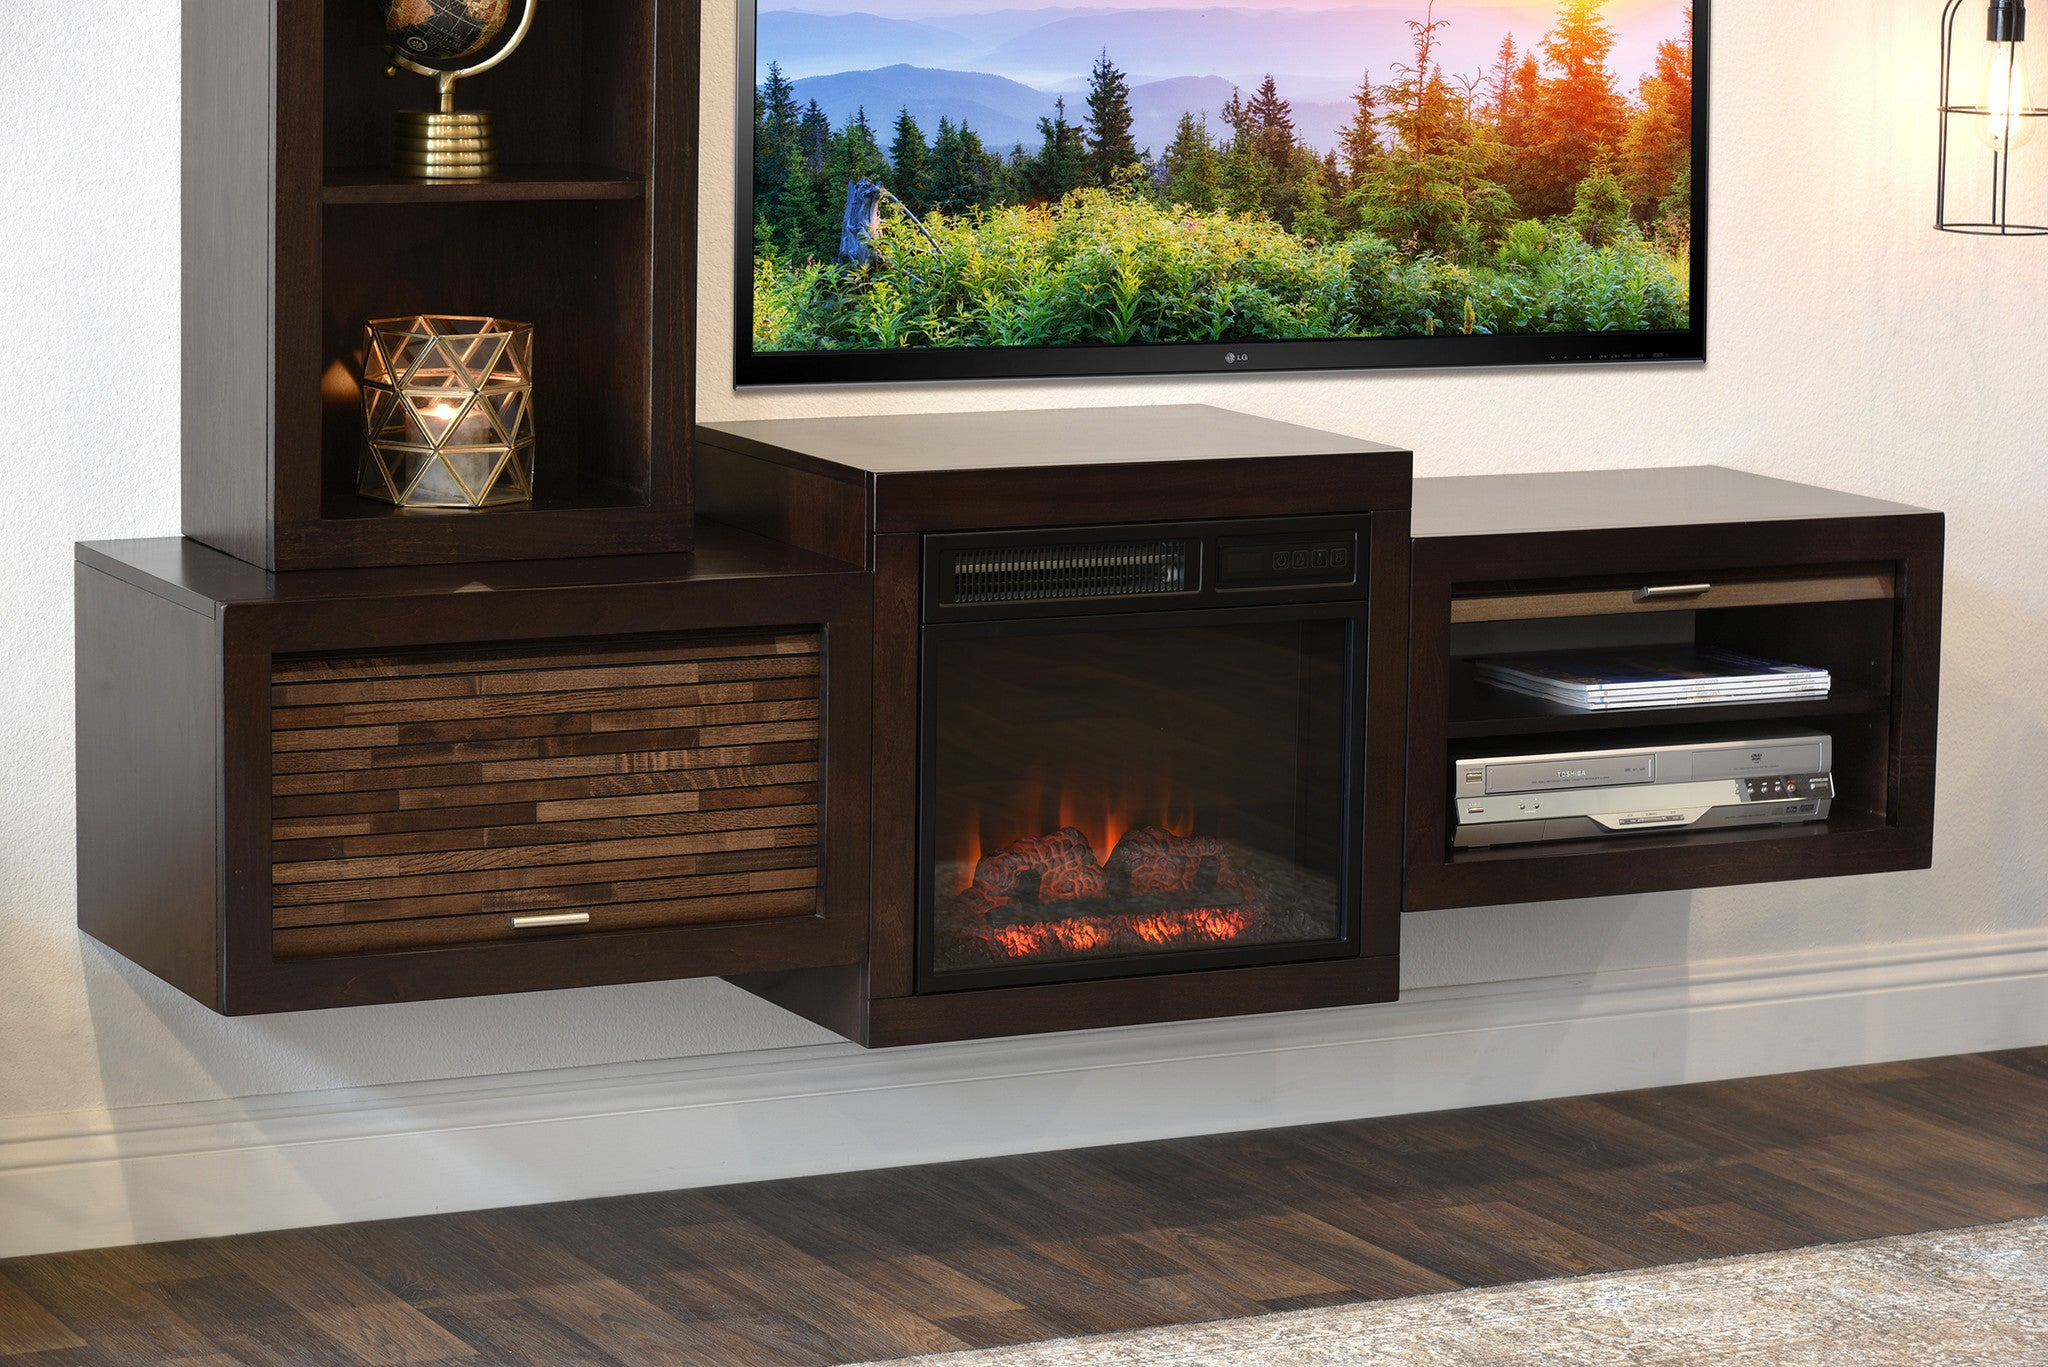 Floating Wall Mount Tv Stand With Fireplace And Bookcase